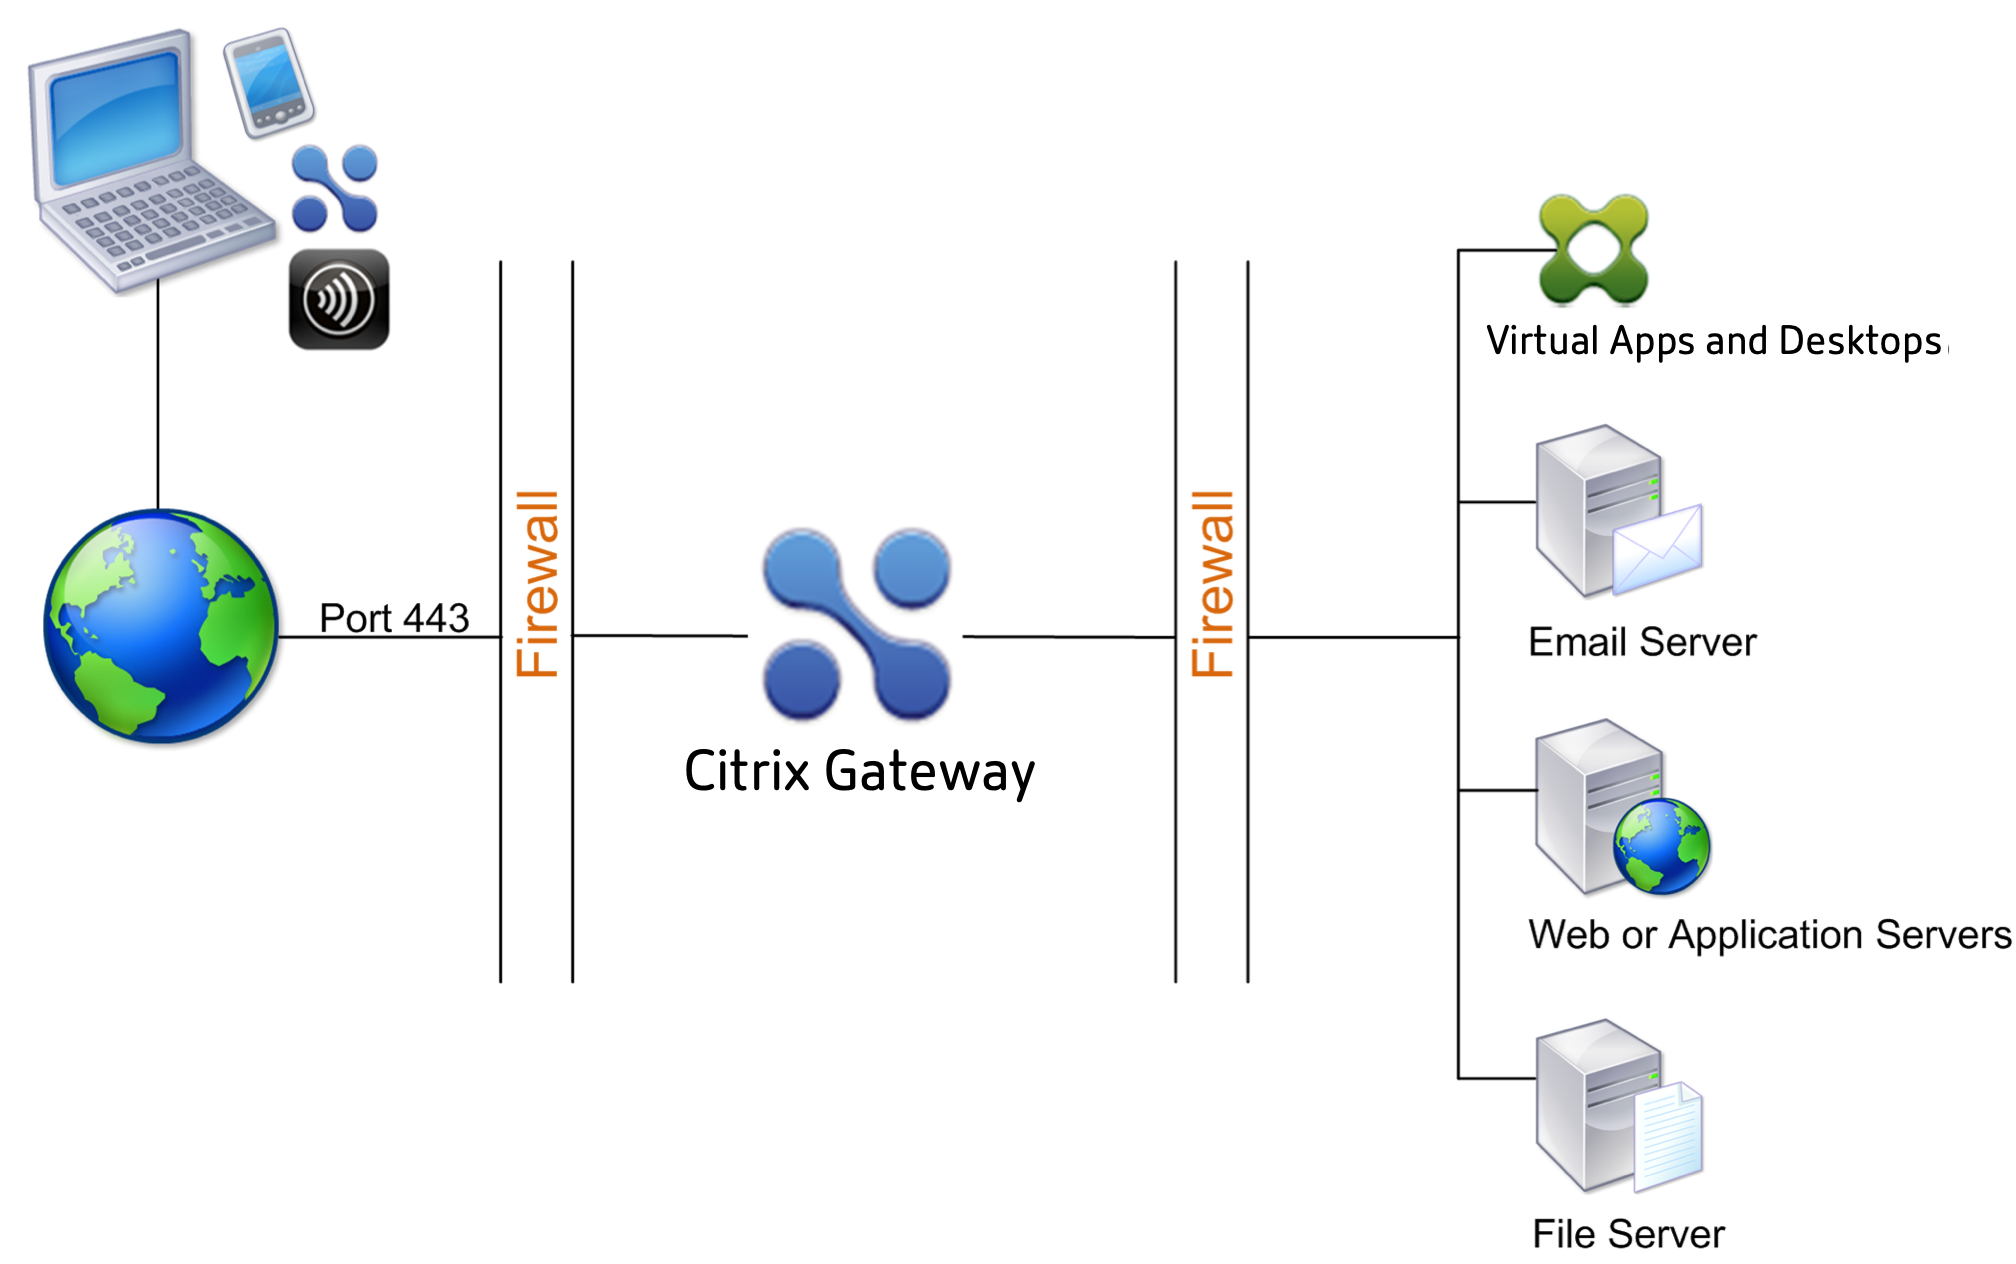 Citrix Gateway implementado en la DMZ